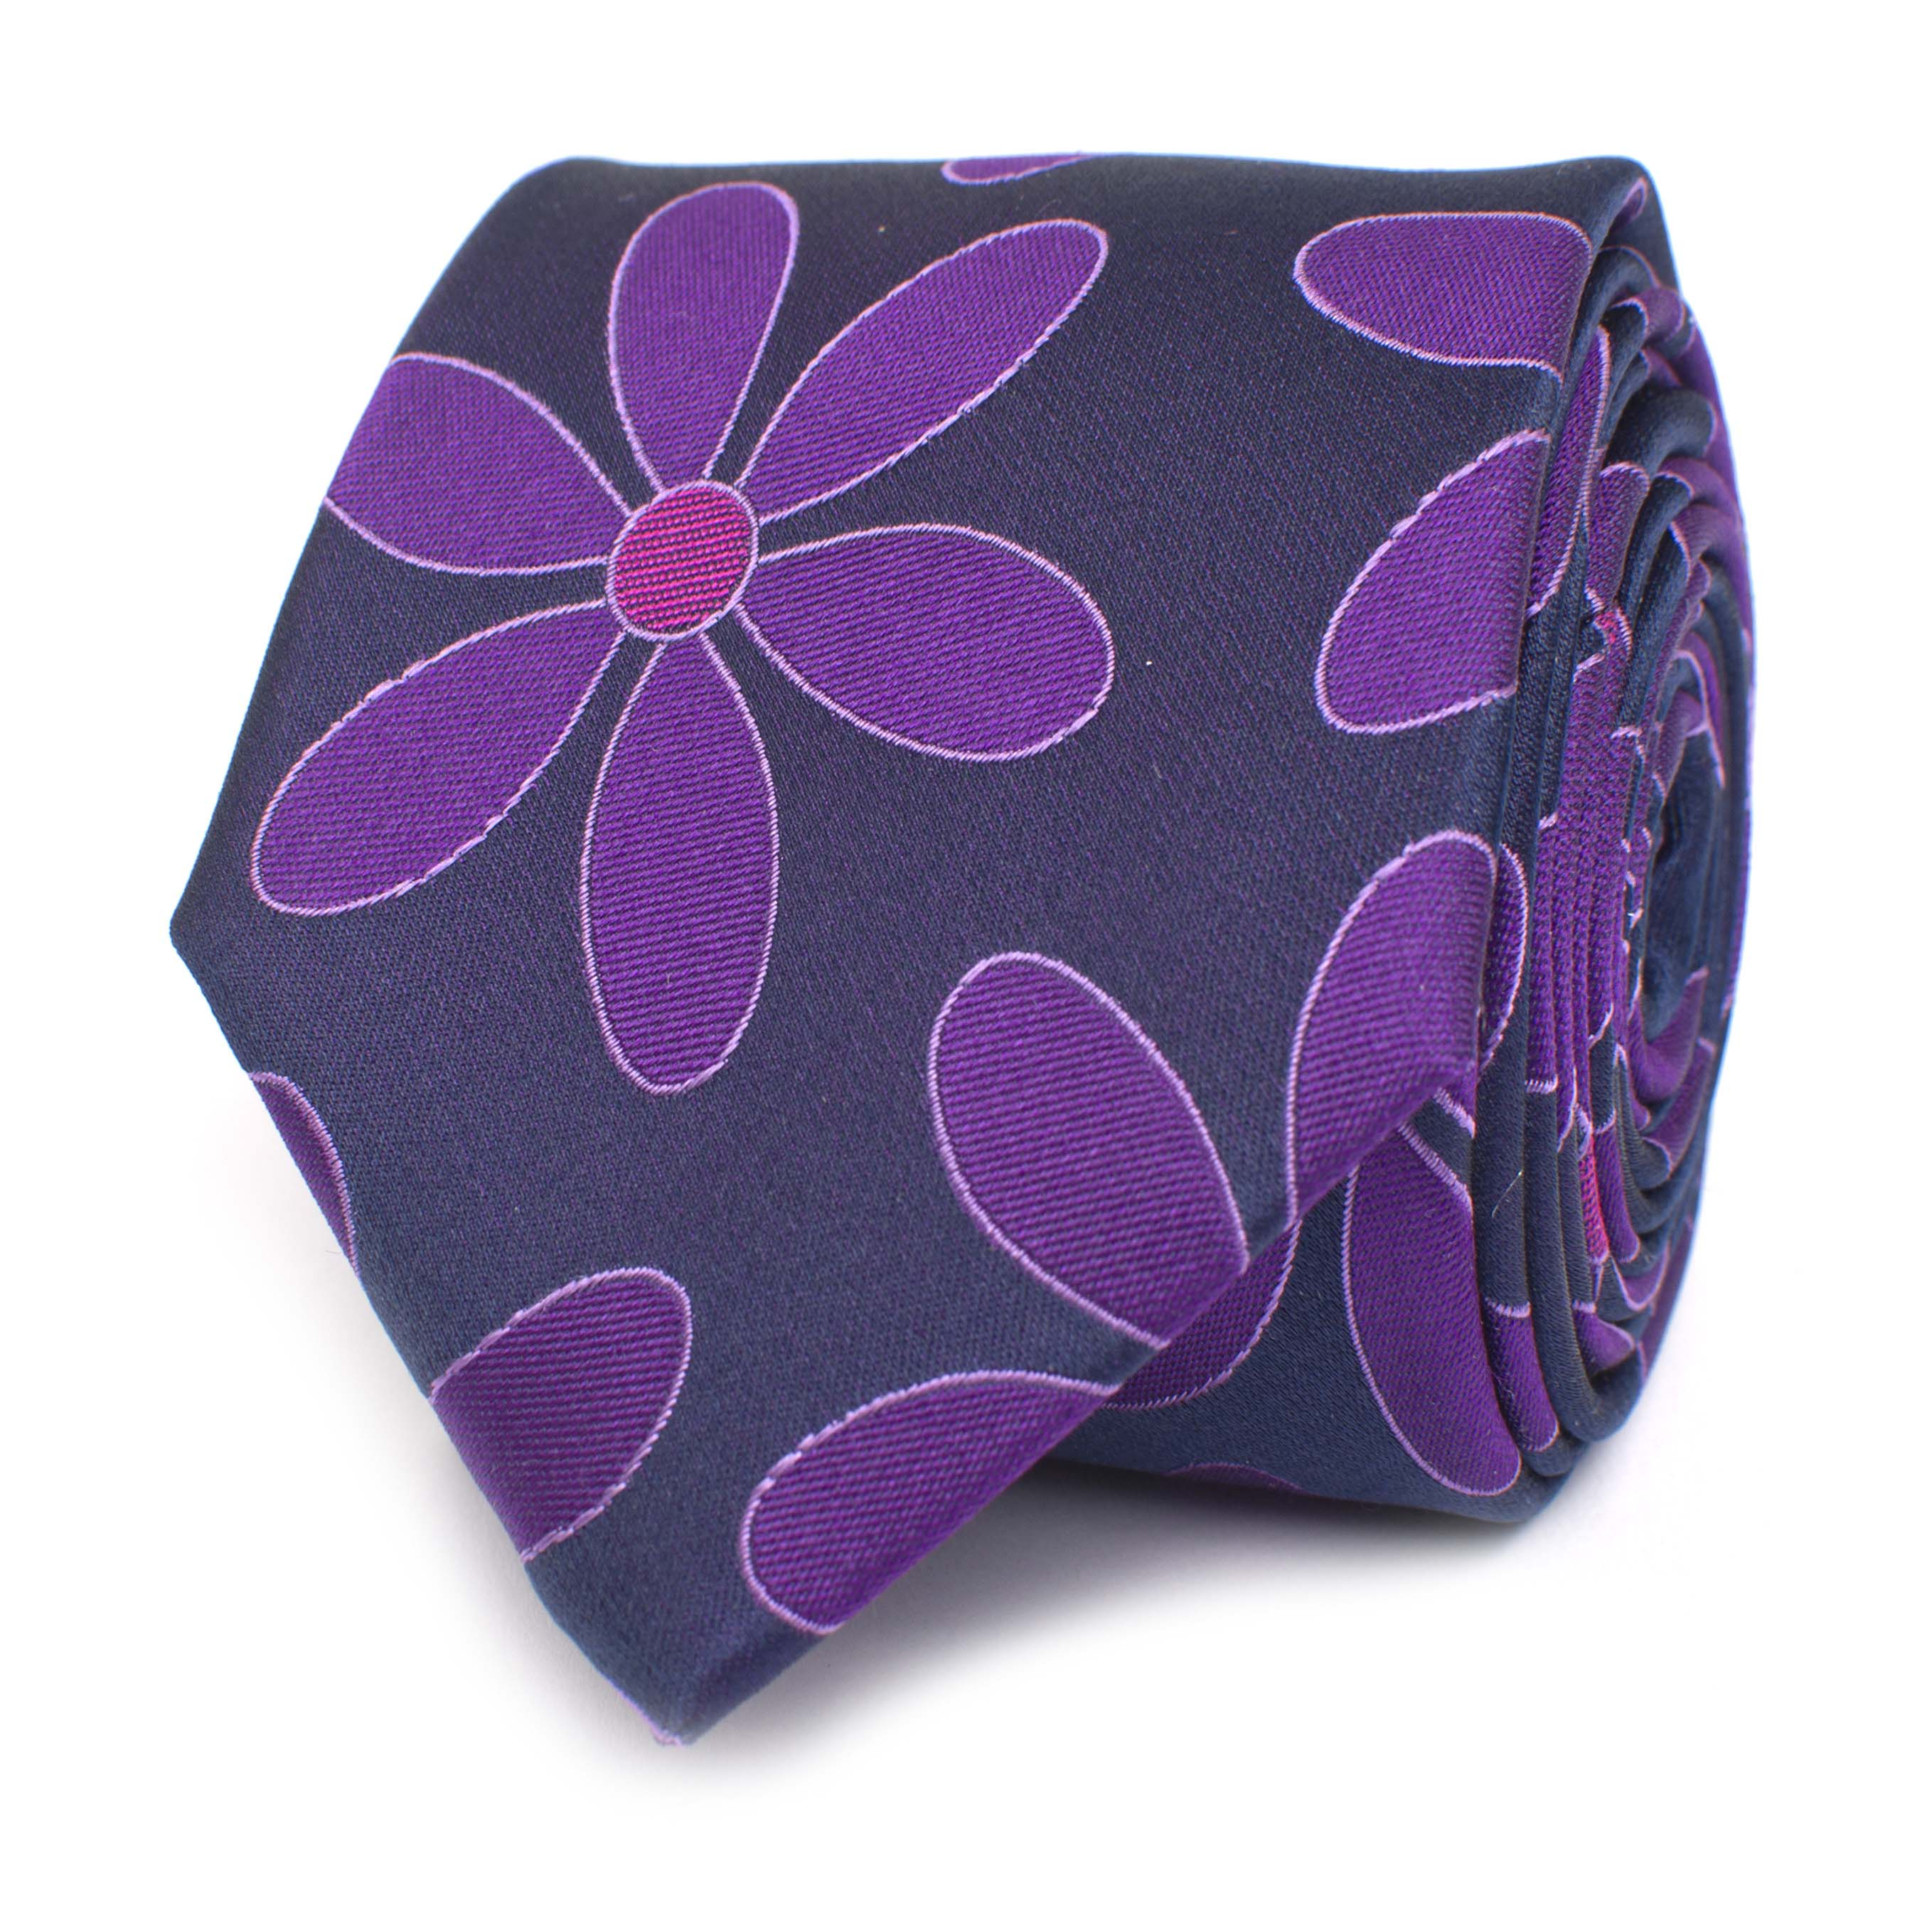 Tie with flower design purple silk